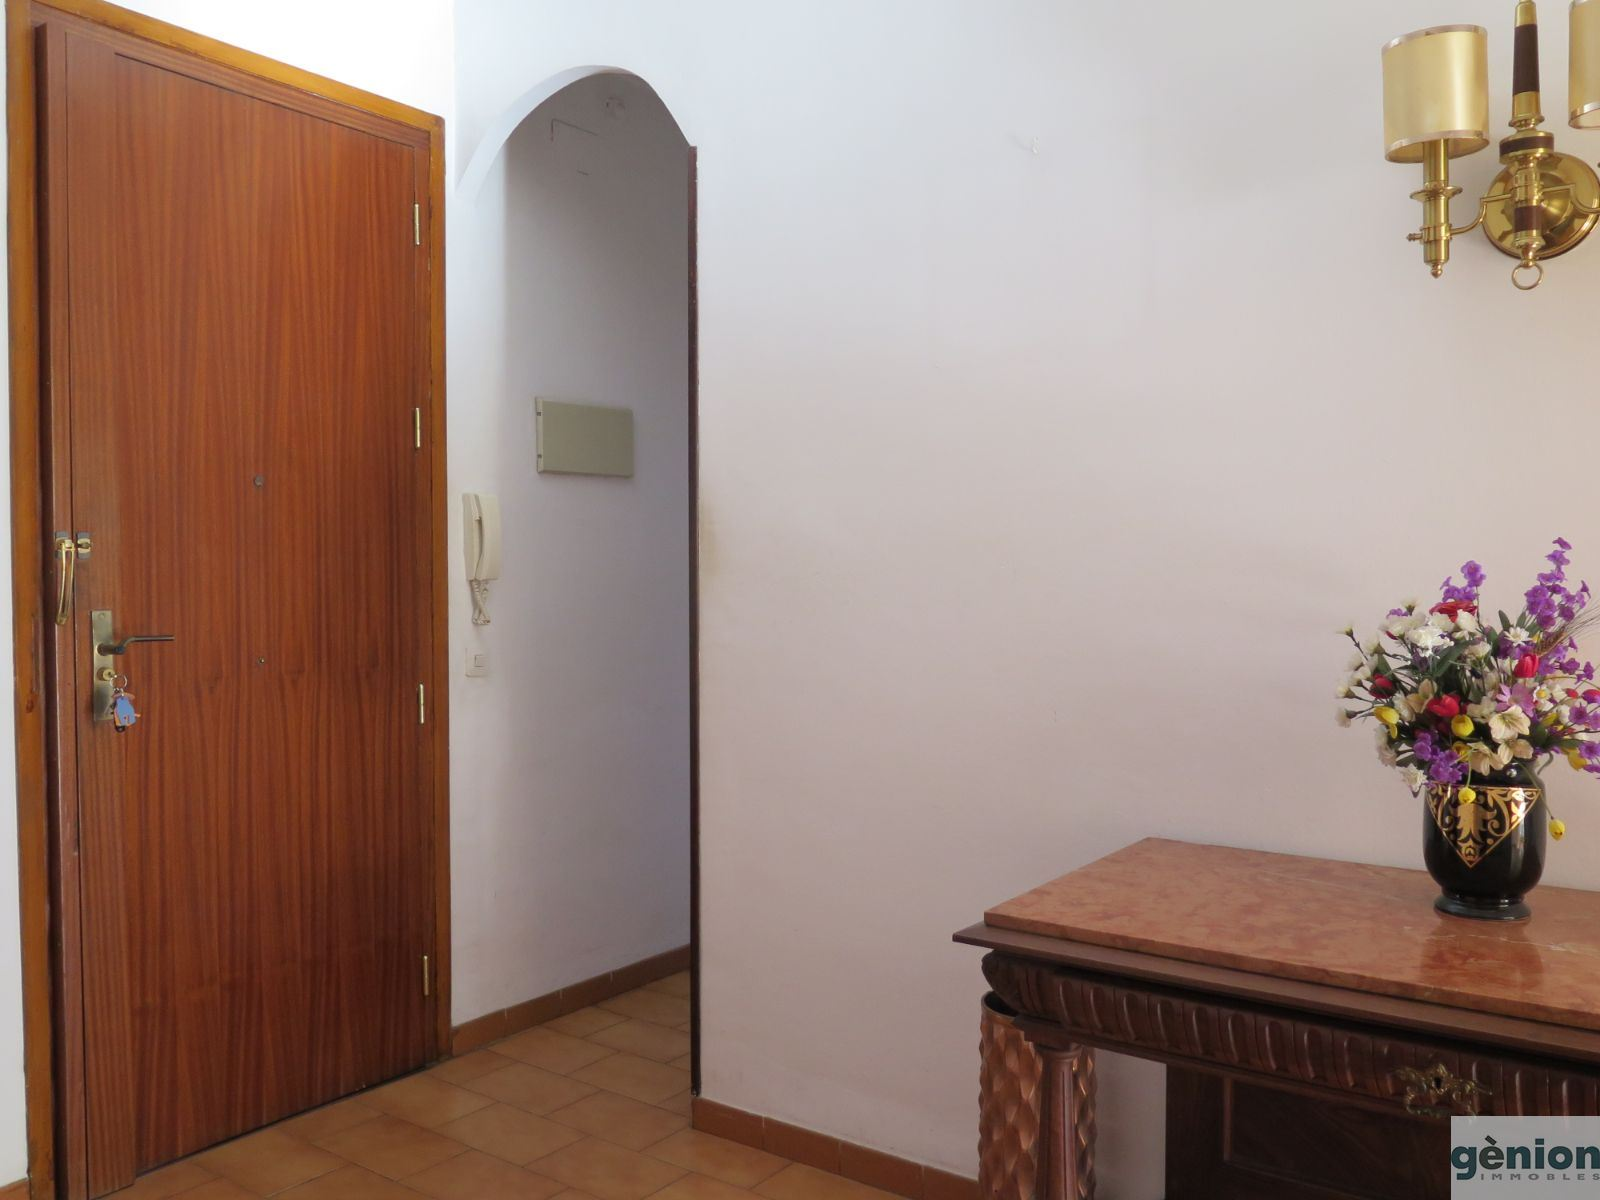 APARTMENT IN GIRONA CITY CENTRE / BARRI VELL. GROSS FLOOR AREA OF 149 m² AND SIX BEDROOMS. FOR REFURBISHMENT